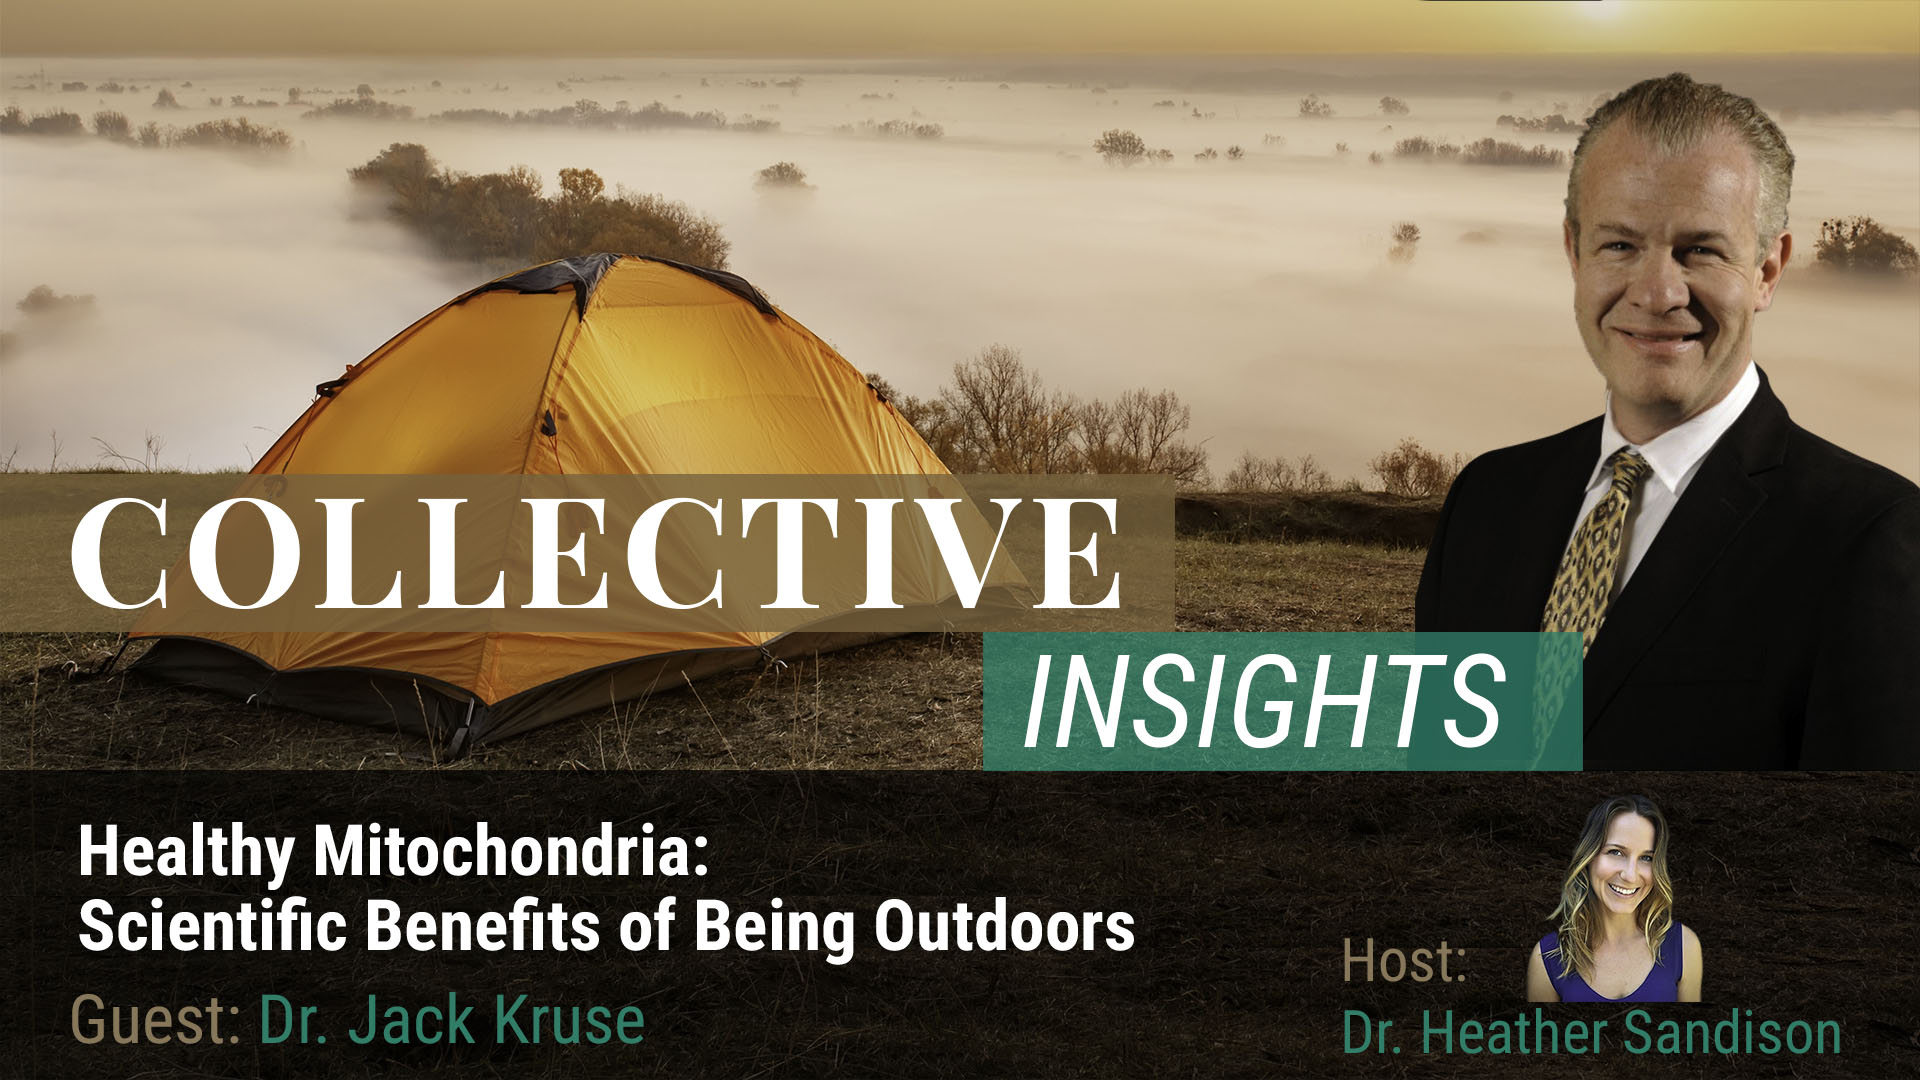 Healthy Mitochondria: Scientific Benefits of Being Outdoors